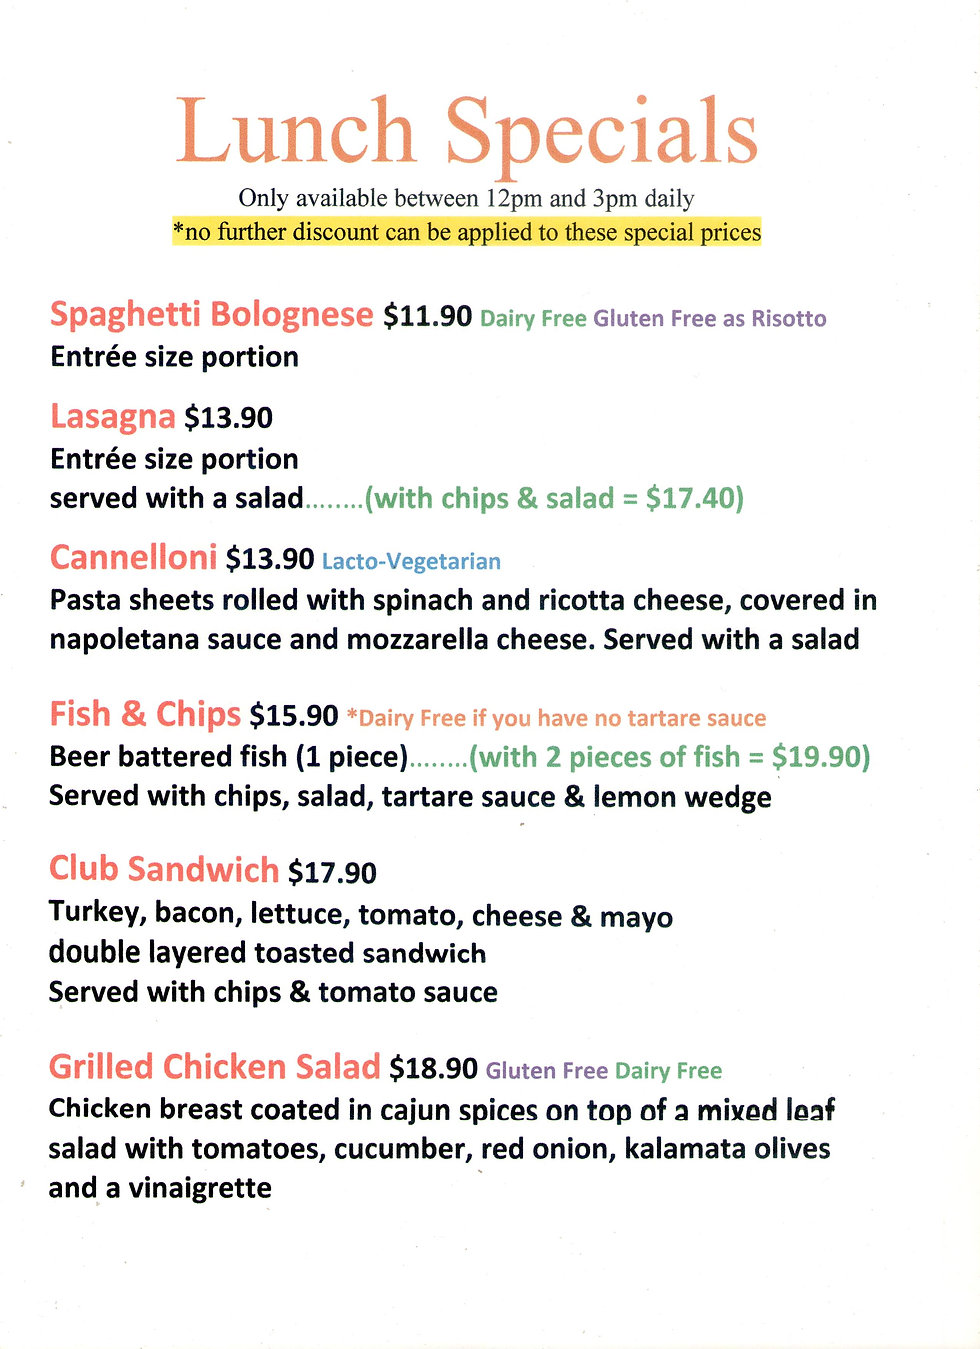 lunch special page 27062020.jpg